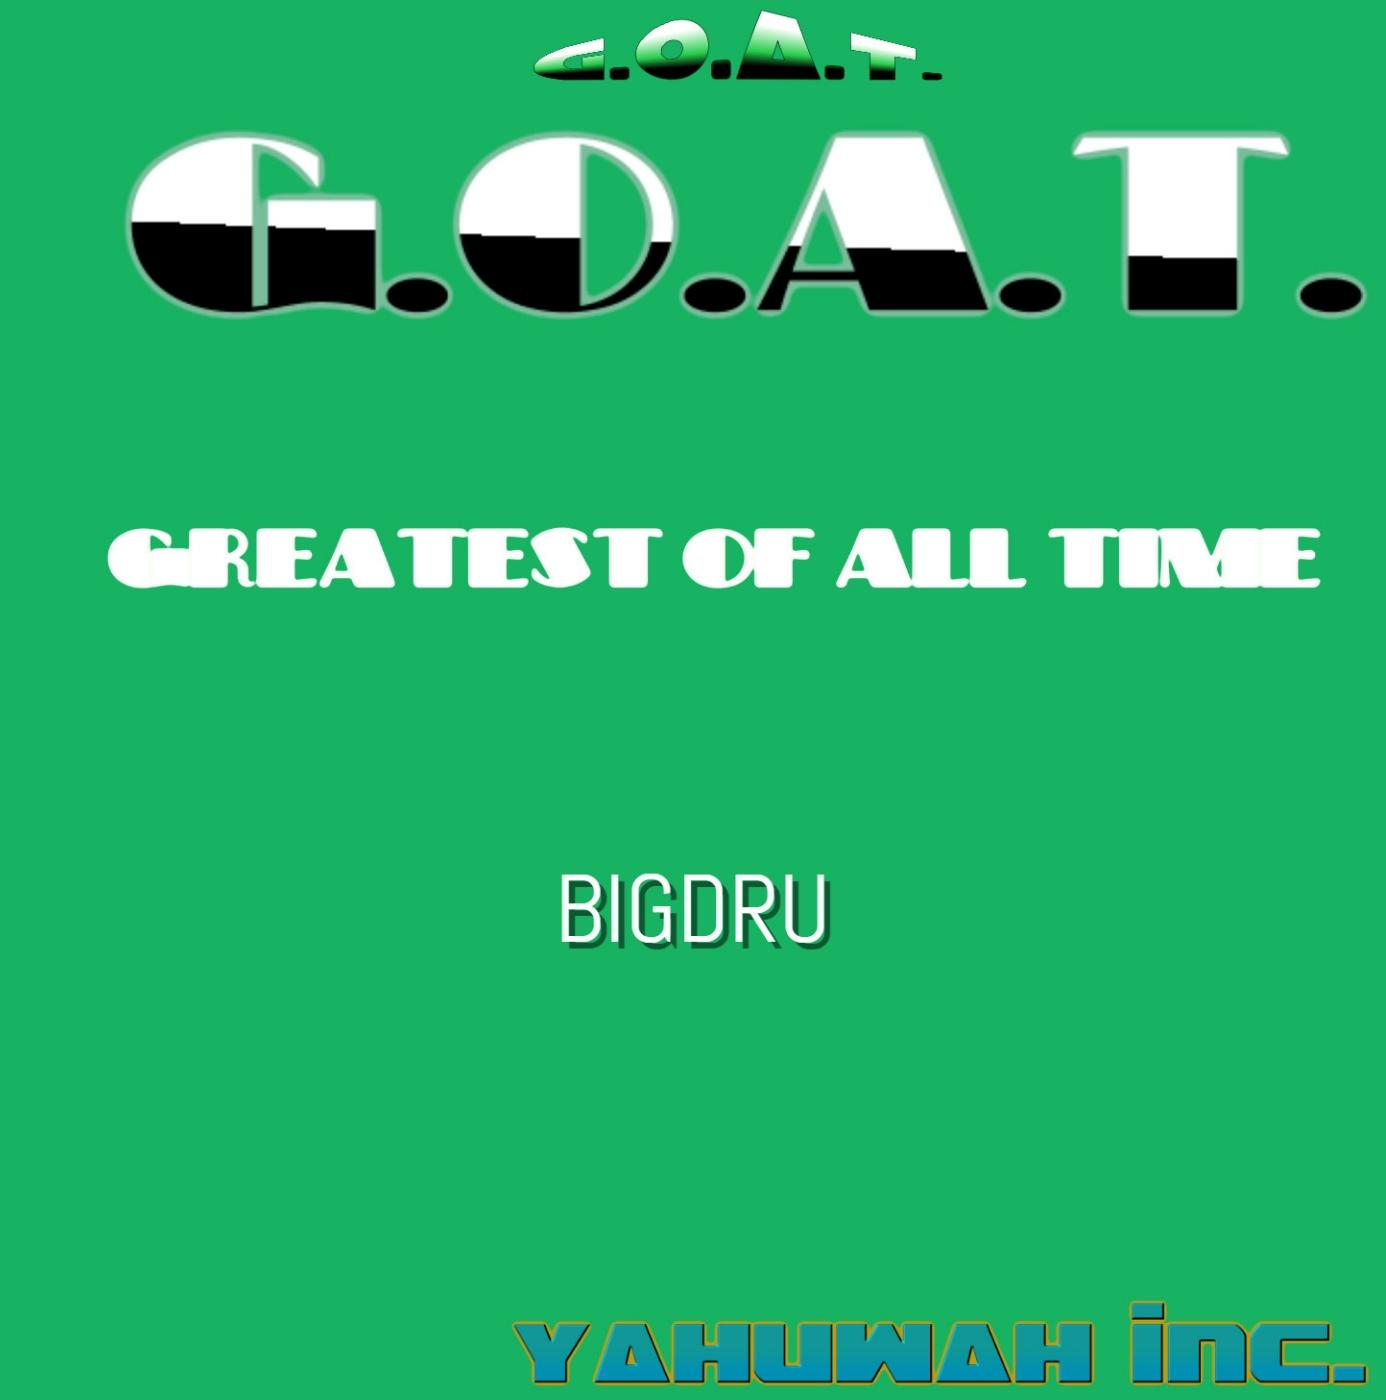 G.O.A.T. GREATEST OF ALL TIME